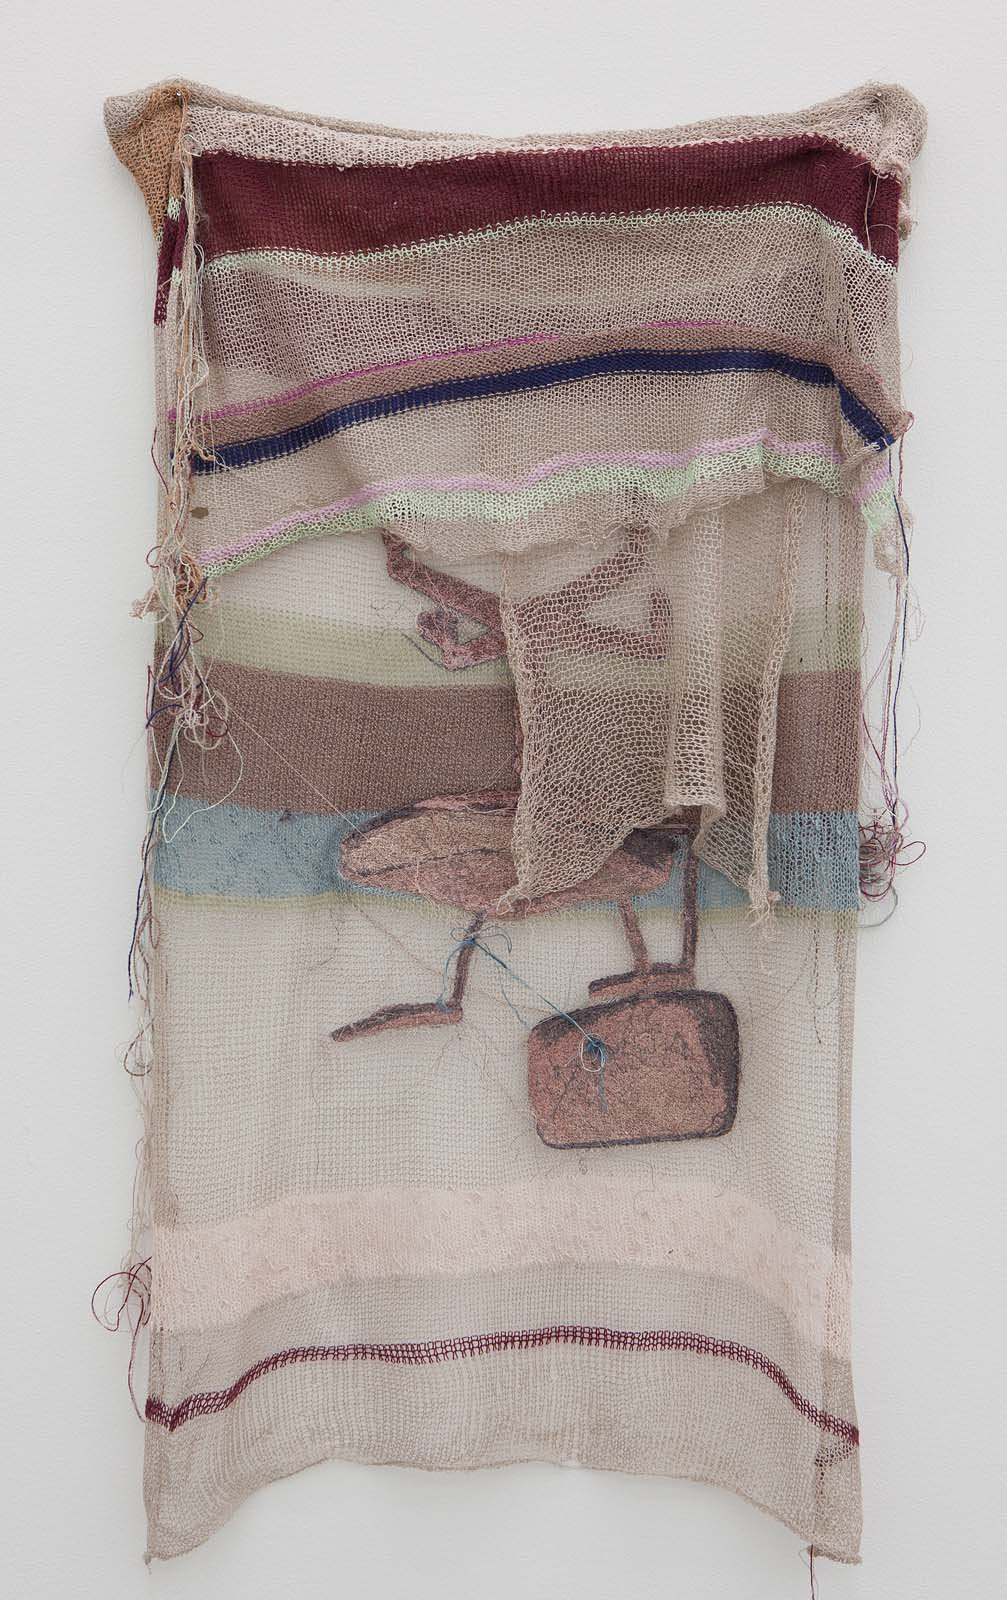 chair, topsy turvy, 2010, embroidery on various textiles